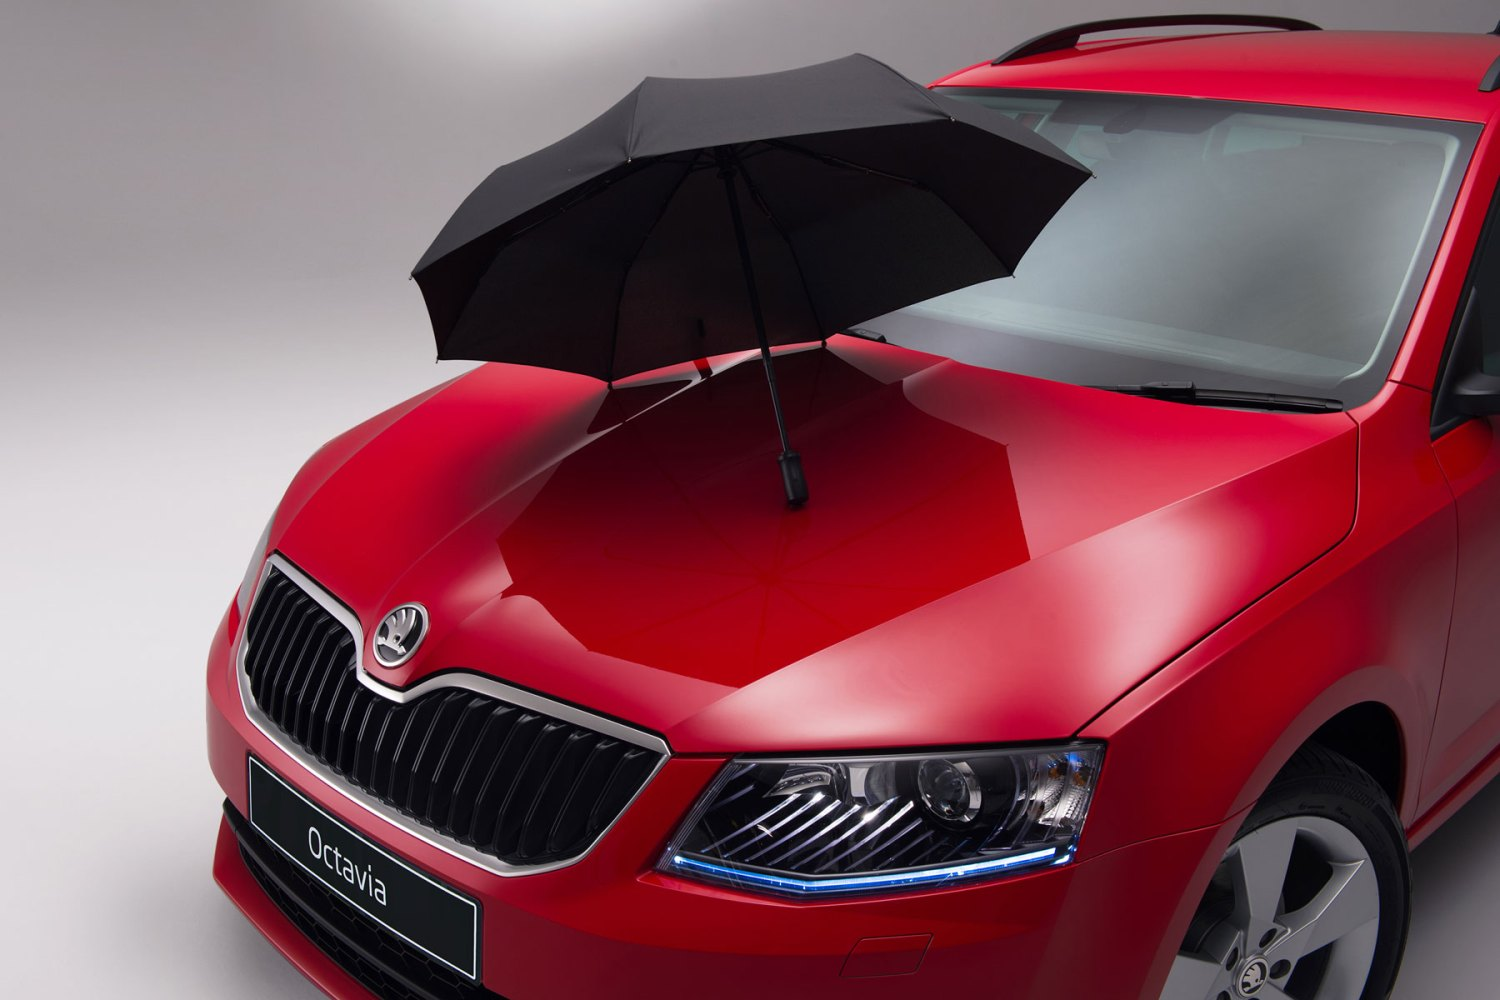 Skoda Octavia umbrella